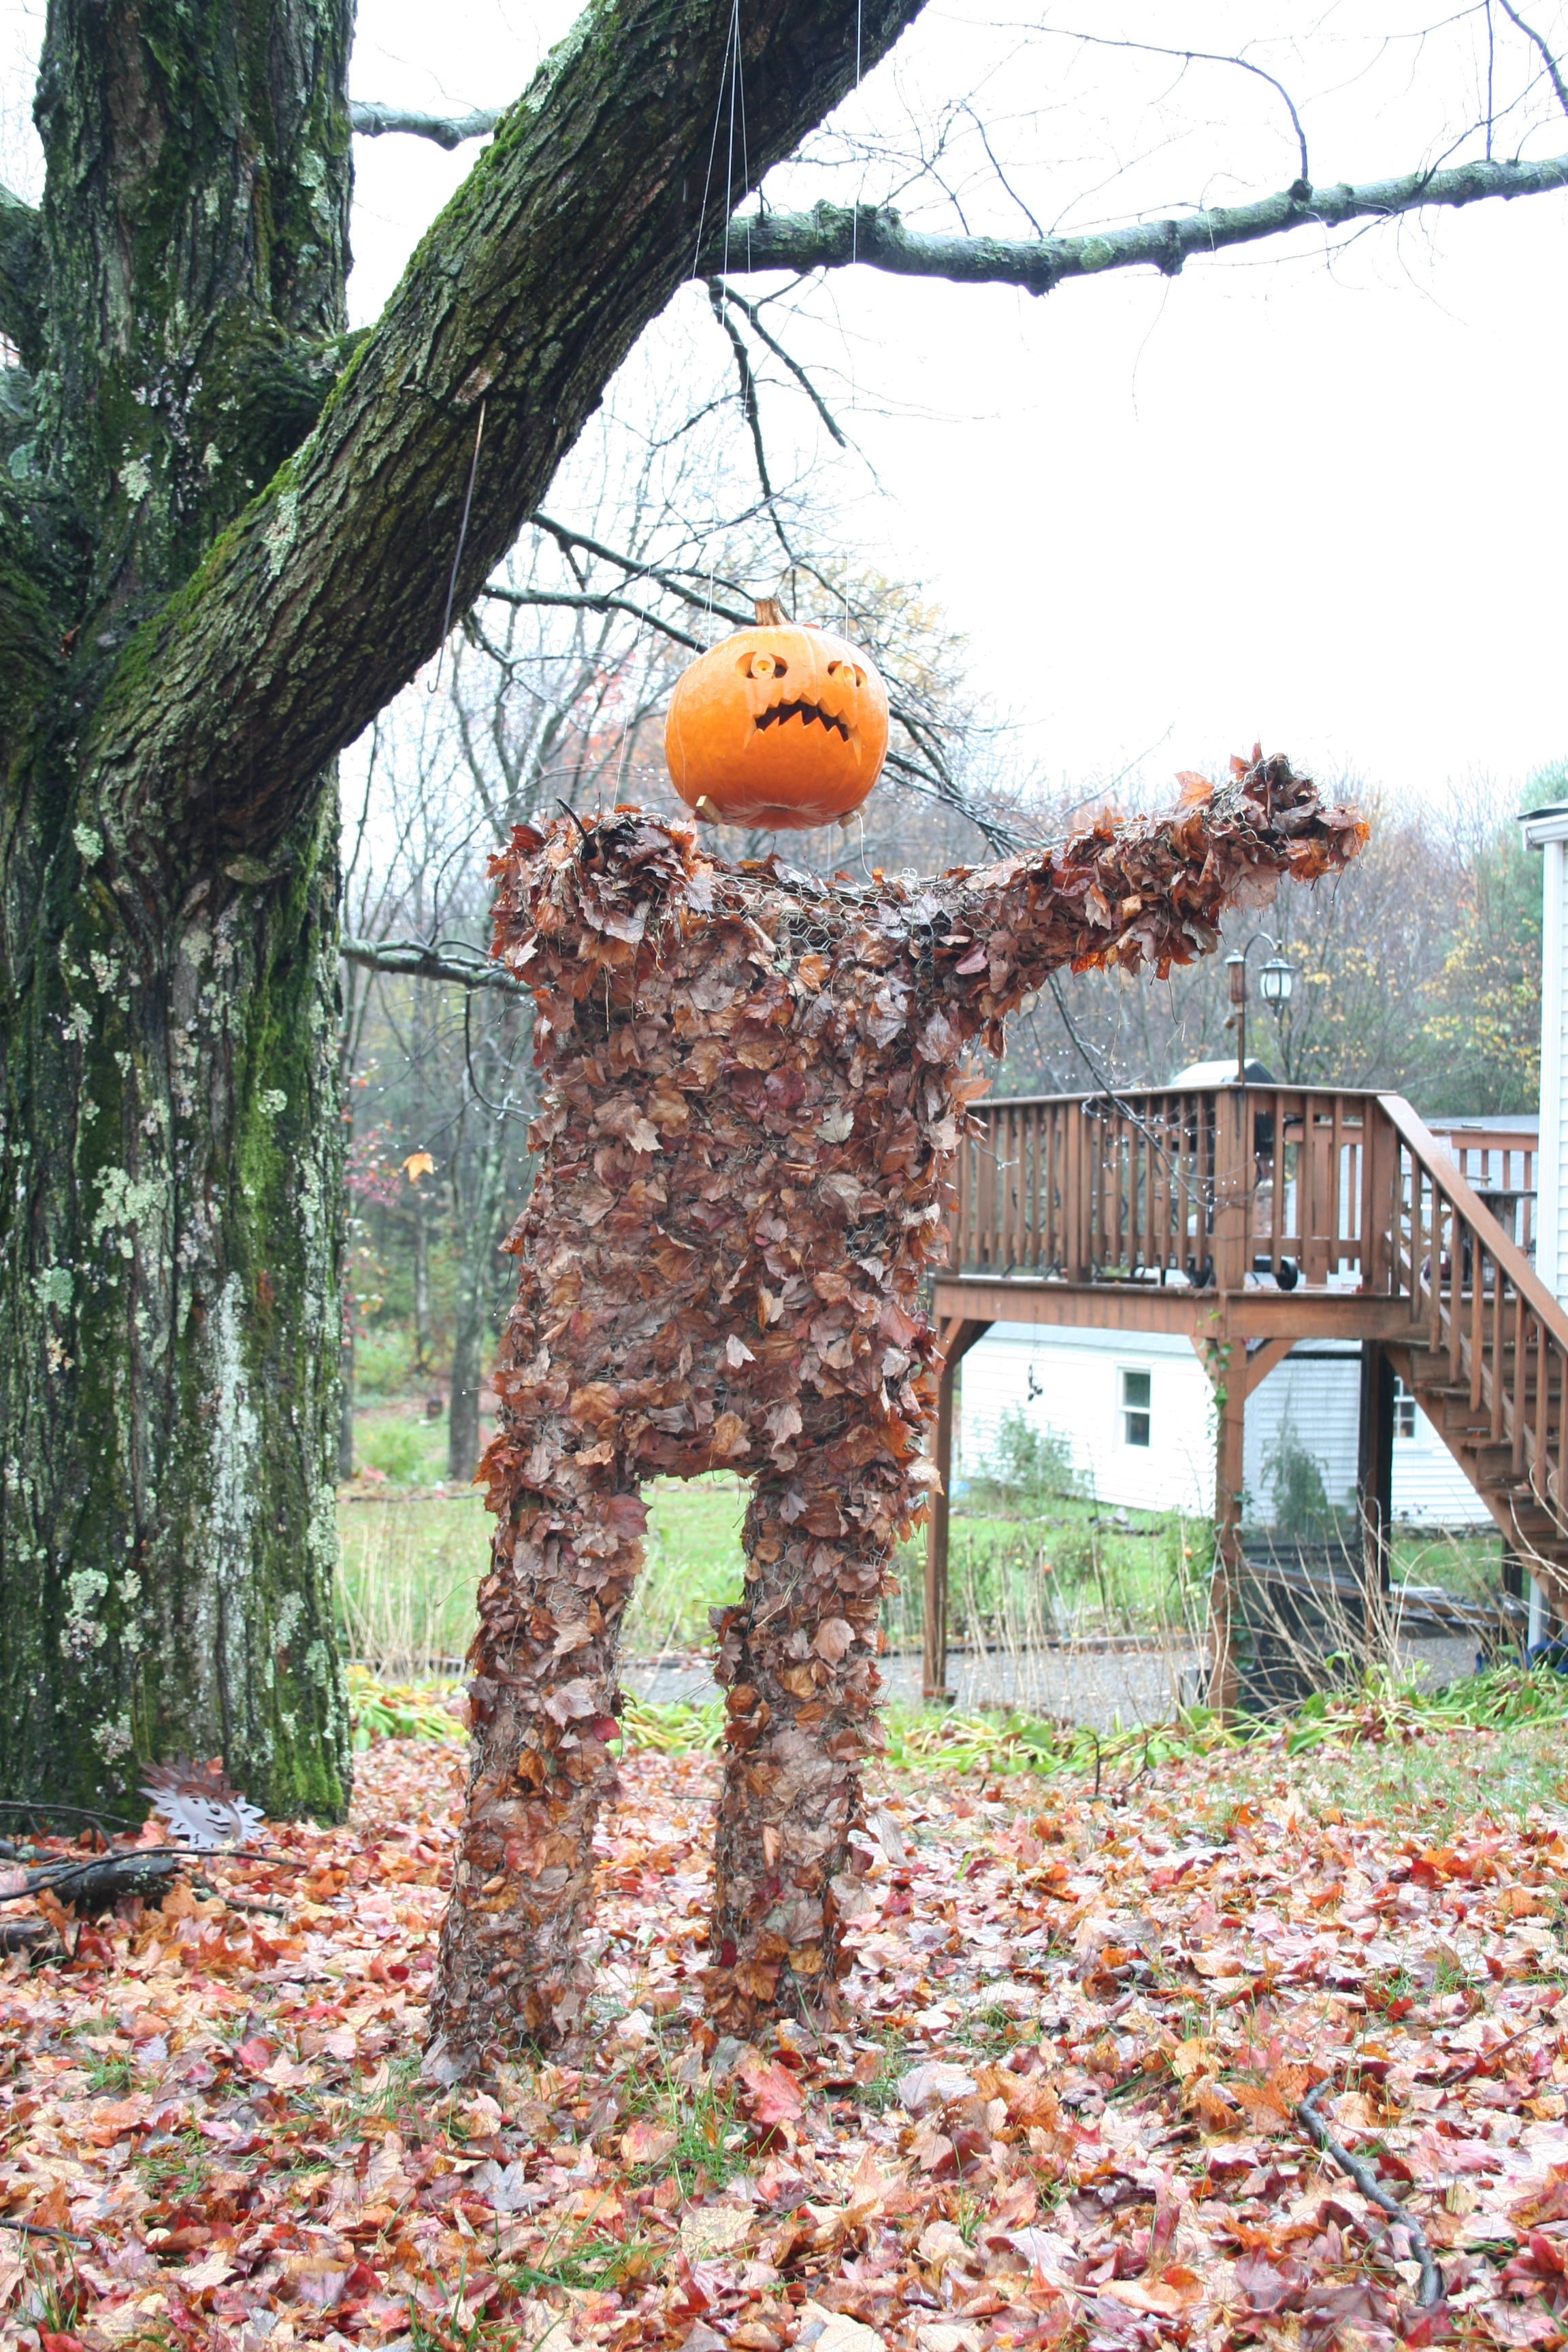 The Leafman